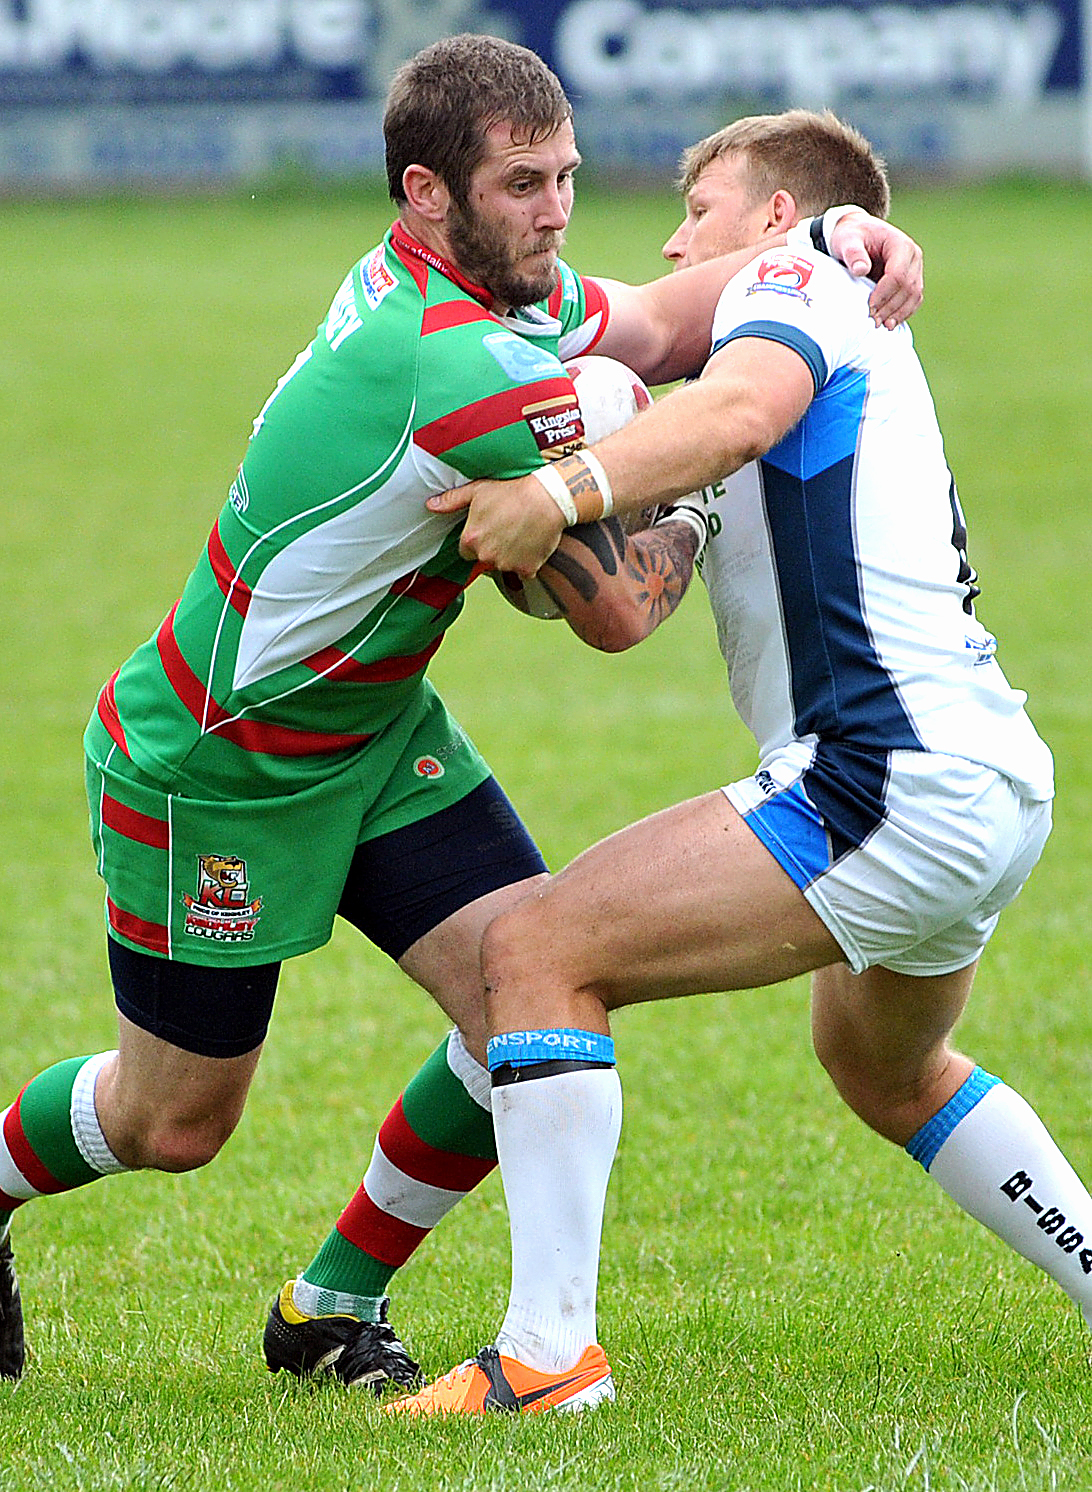 James Haley was among the try-scorers for Cougars